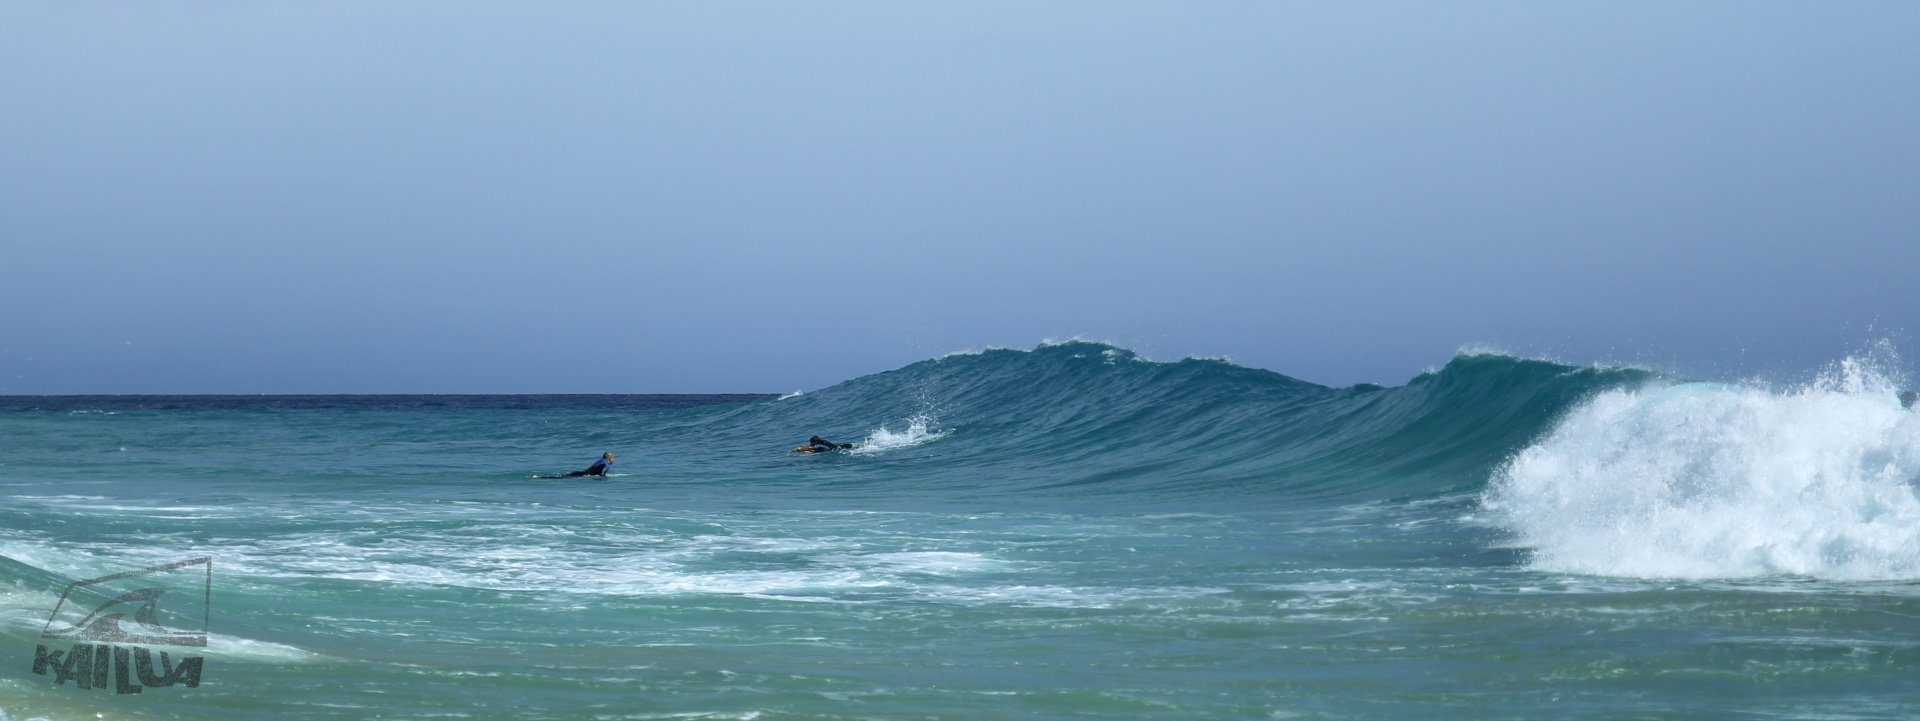 Kailua Surf School's photo of Cruz Roja